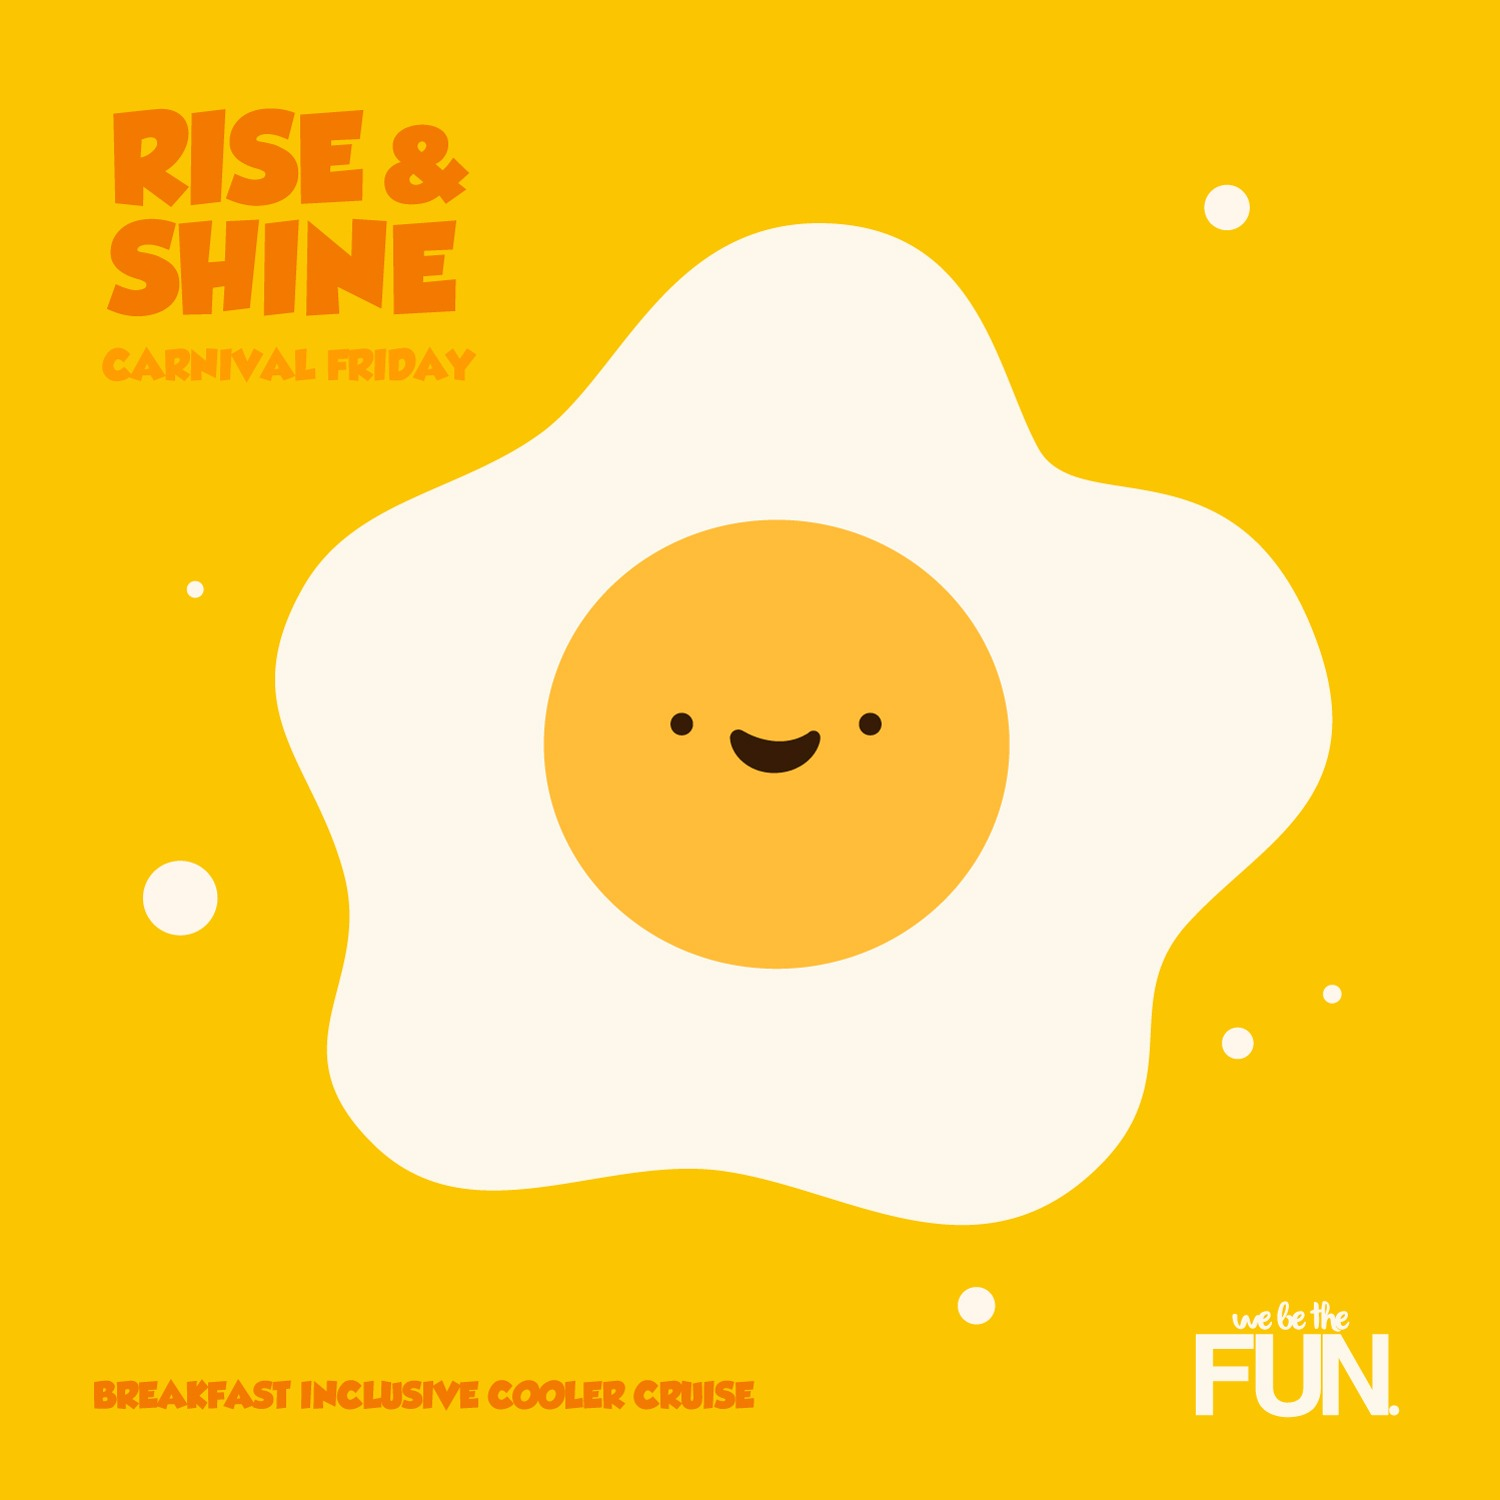 RISE 'N SHINE -  [DDI, Breakfast Inclusive, Cooler Cruise]